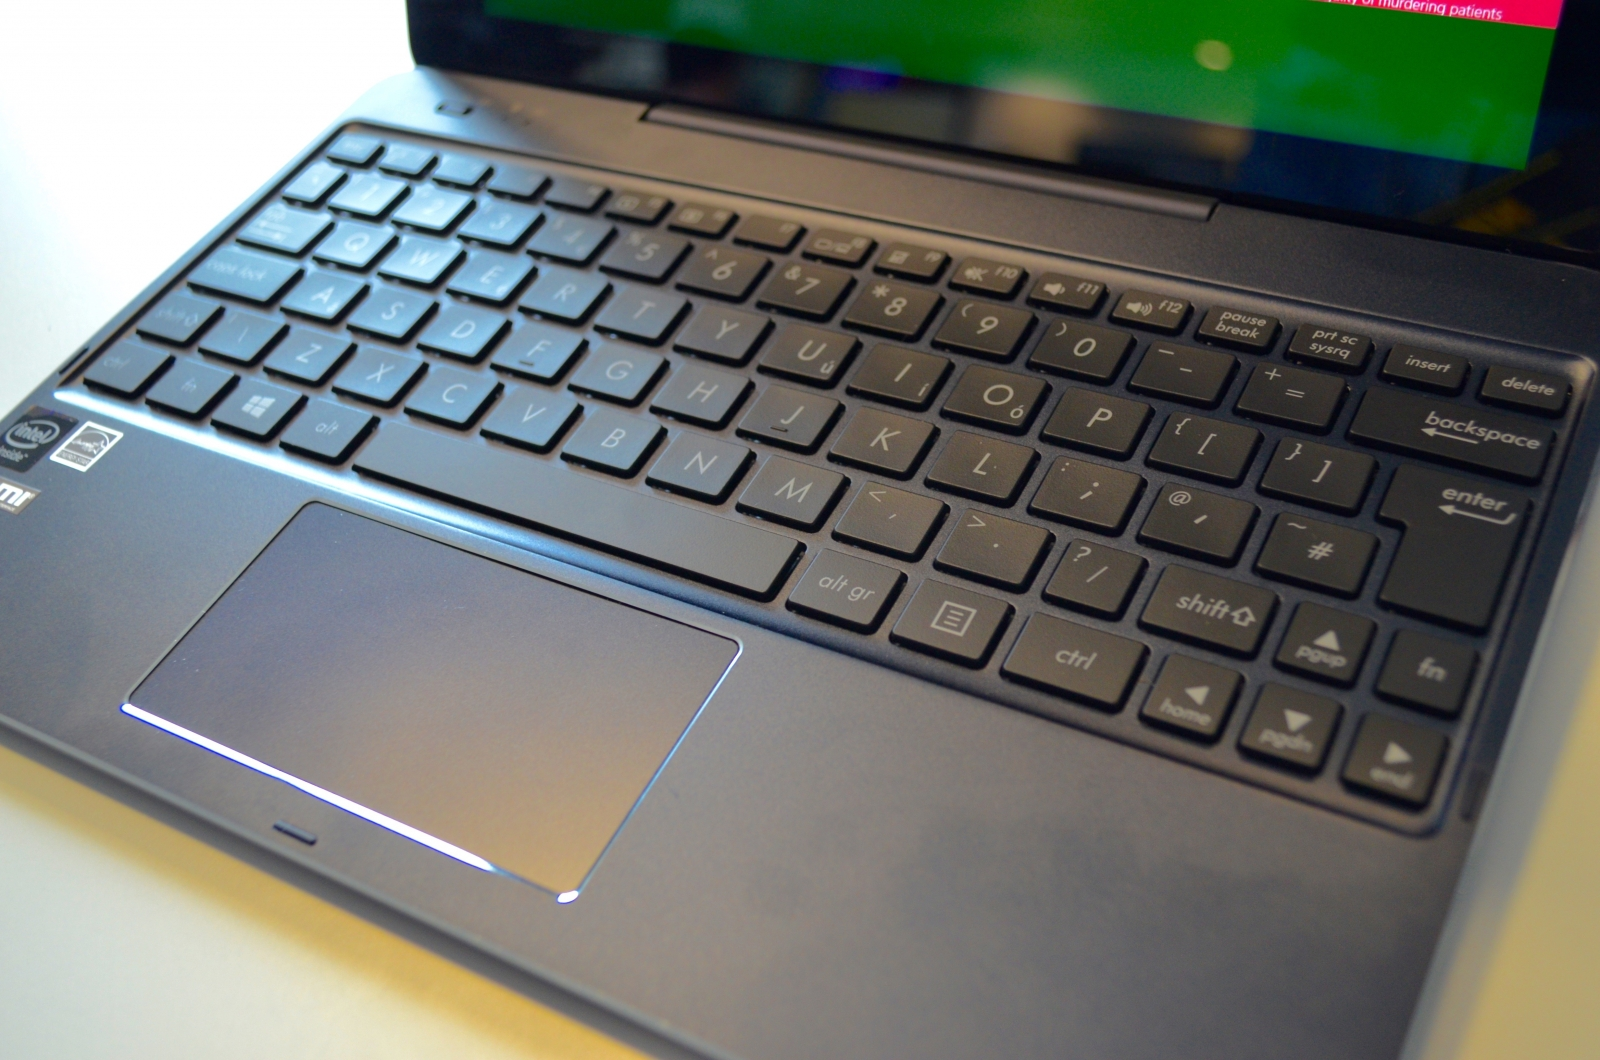 Asus transformer book chi t100 review a windows 8 tablet to replace your laptop - Asus transformer t100 ports ...